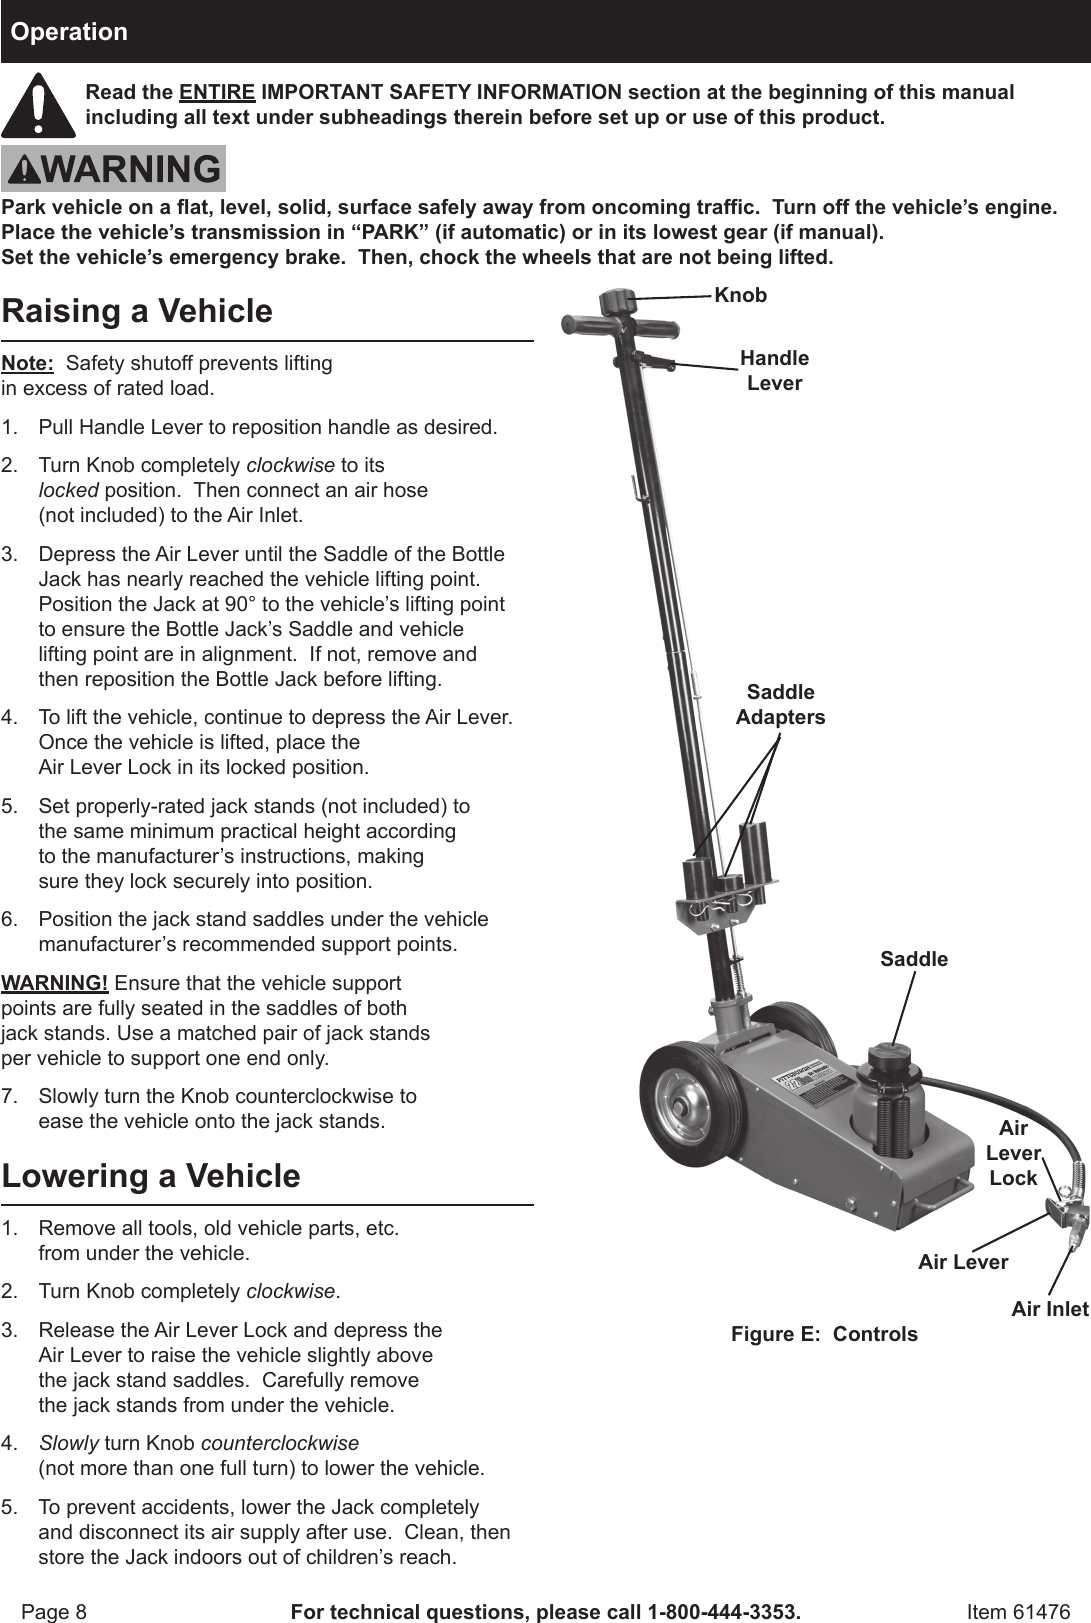 Harbor Freight 22 Ton Air Hydraulic Floor Jack Product Manual Parts Diagram Page 8 Of 12